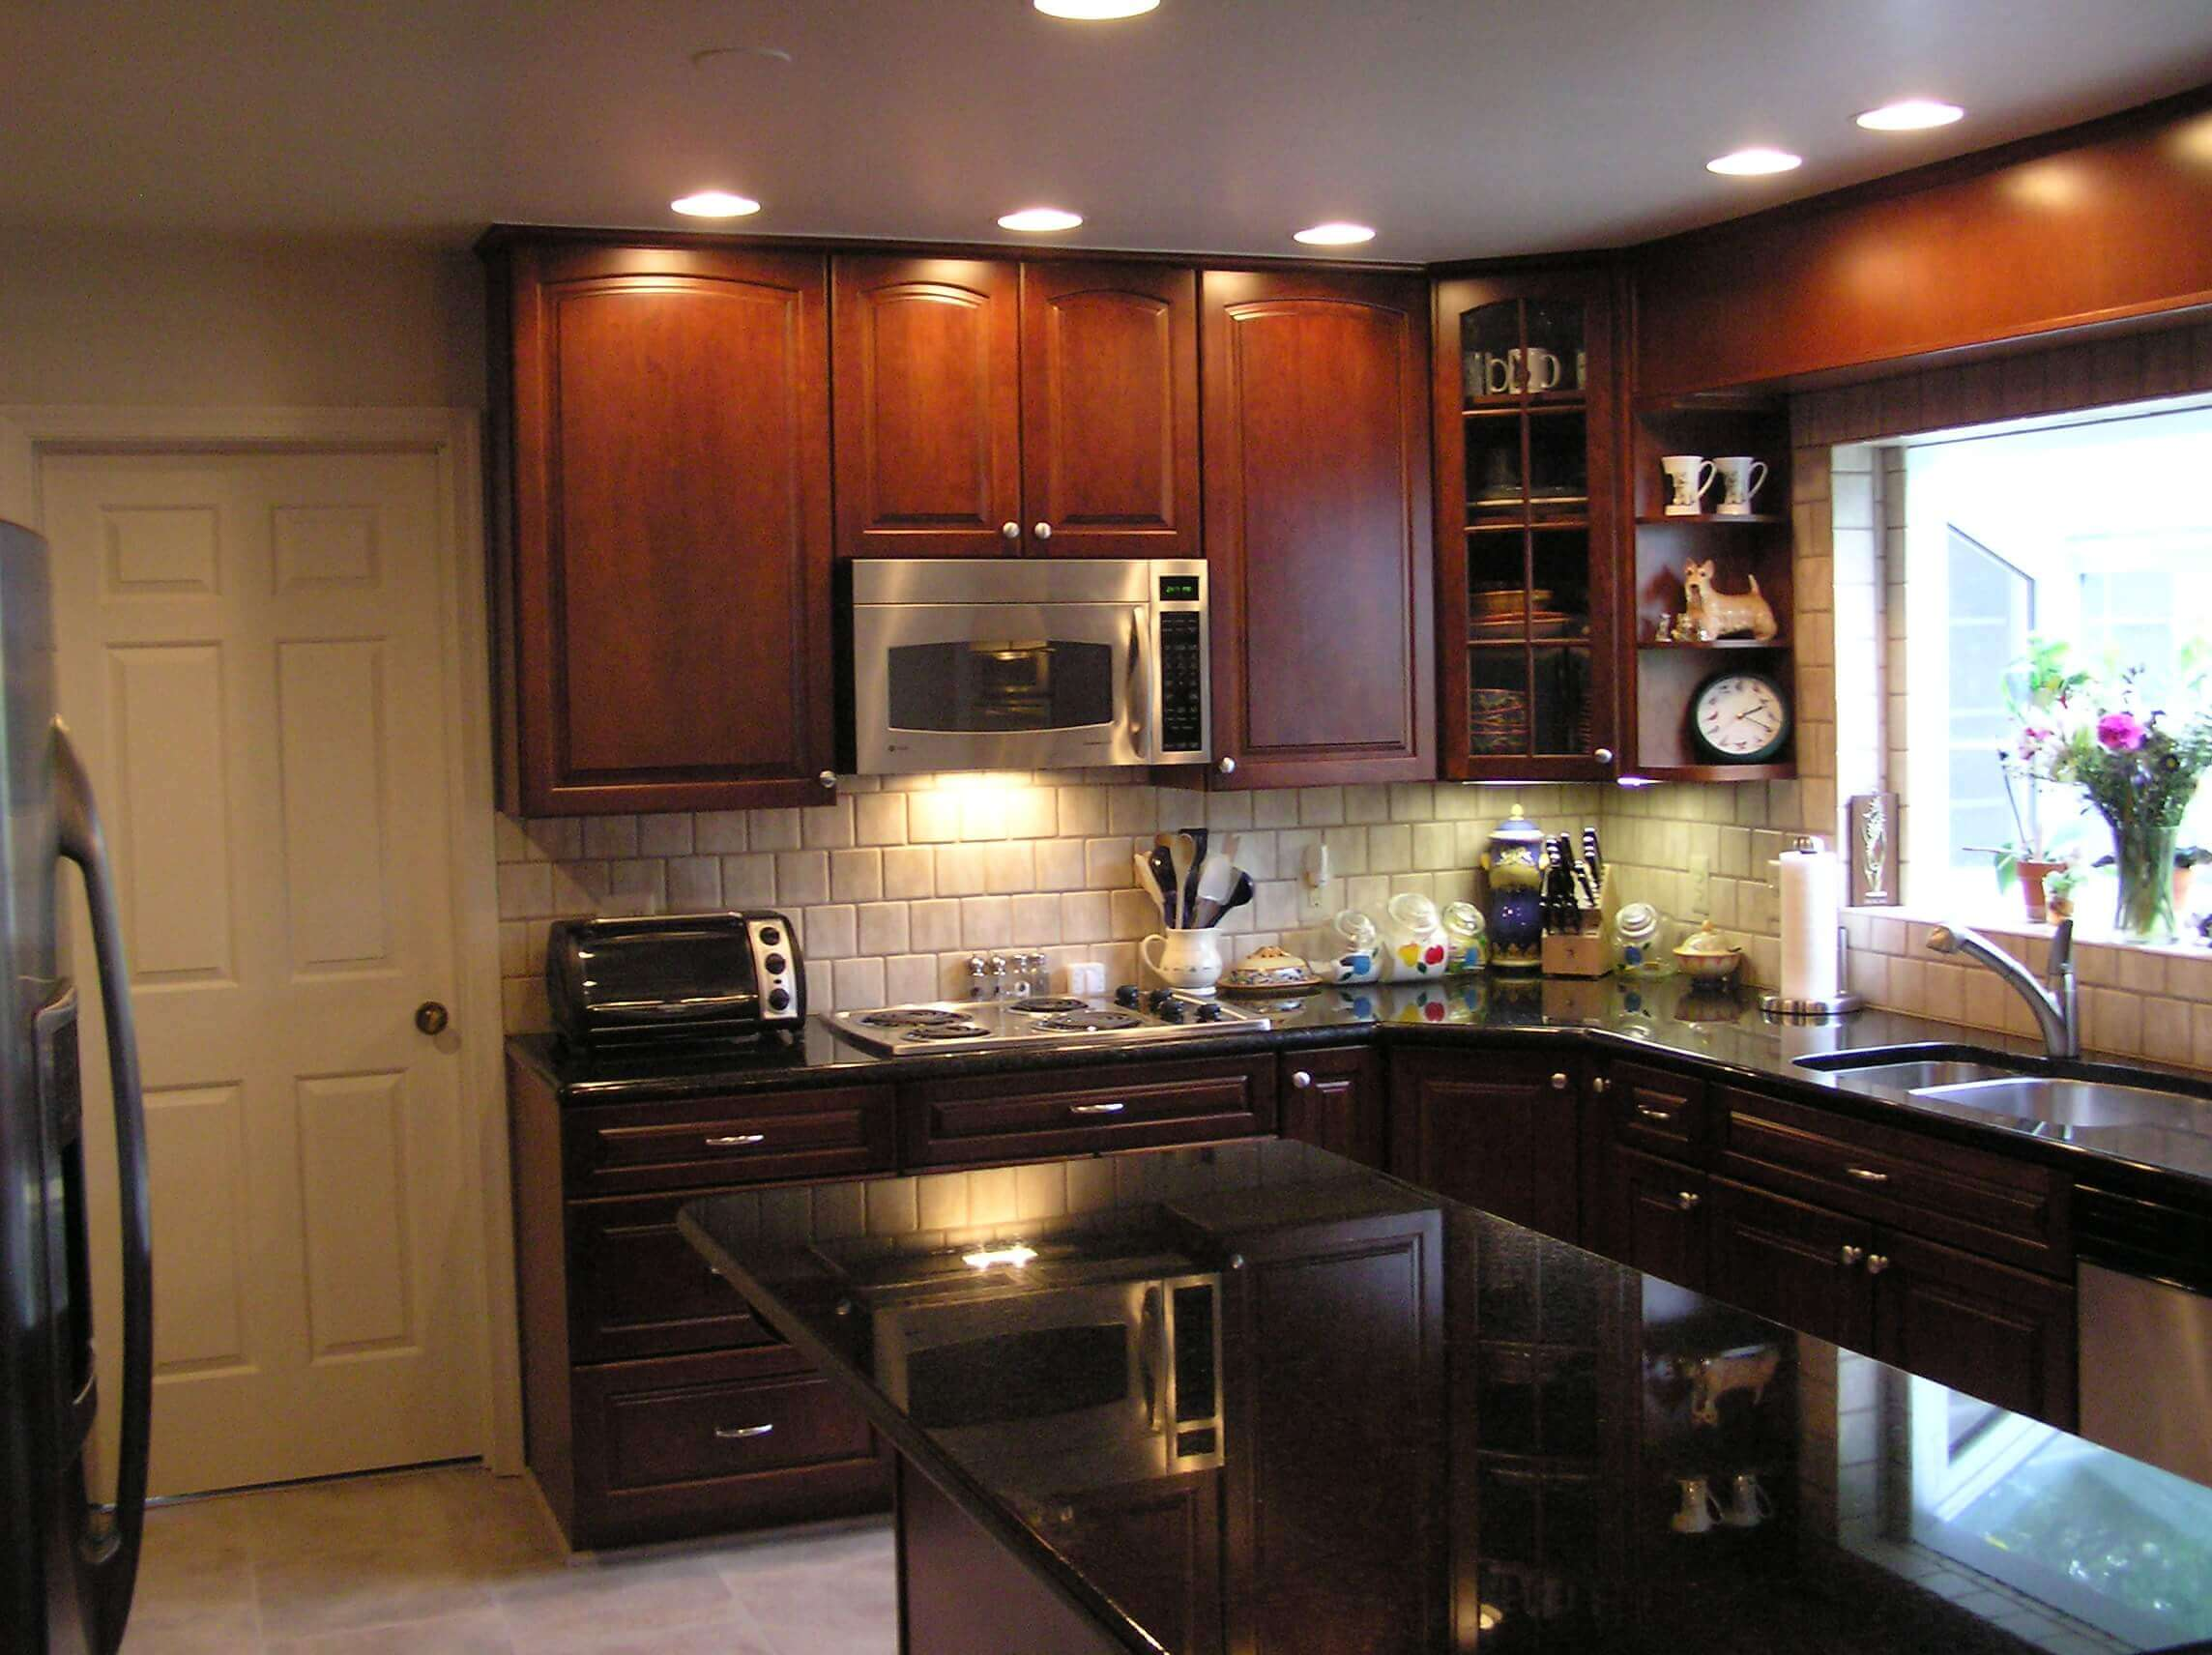 Budget friendly kitchen remodeling ideas can take a basic minimalist space and enhance it by the addition of simple elements. White brick–shaped backsplash in between the light brown upper and dark brown lower cabinets in an otherwise dark space balances out the look in this kitchen